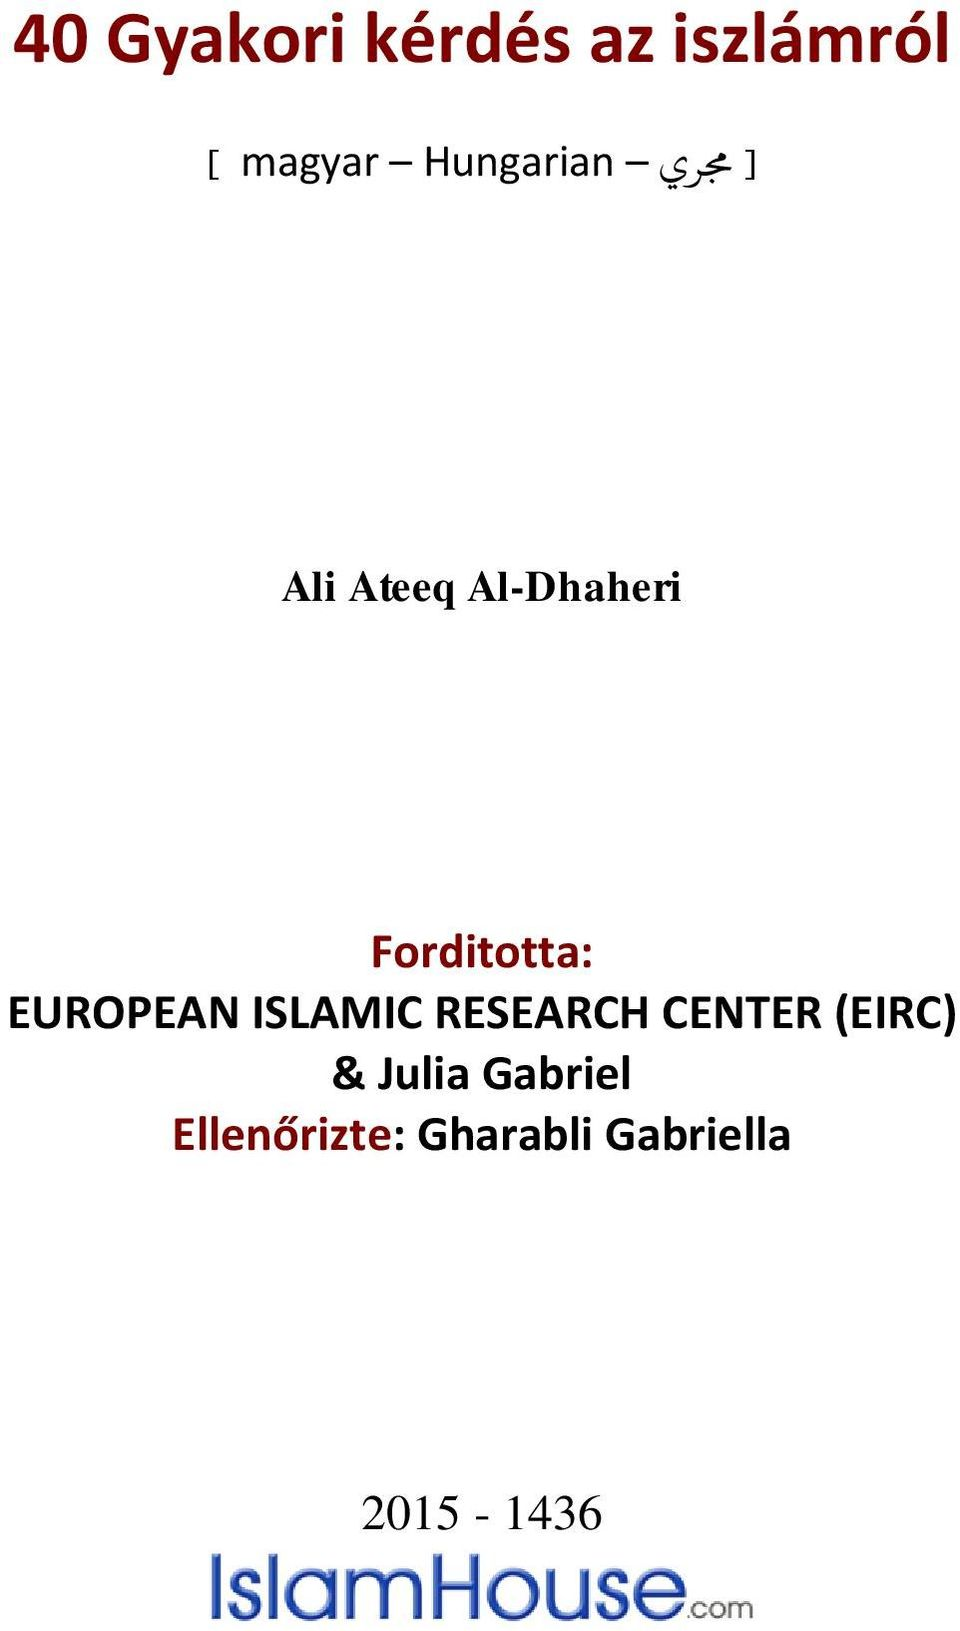 Forditotta: EUROPEAN ISLAMIC RESEARCH CENTER